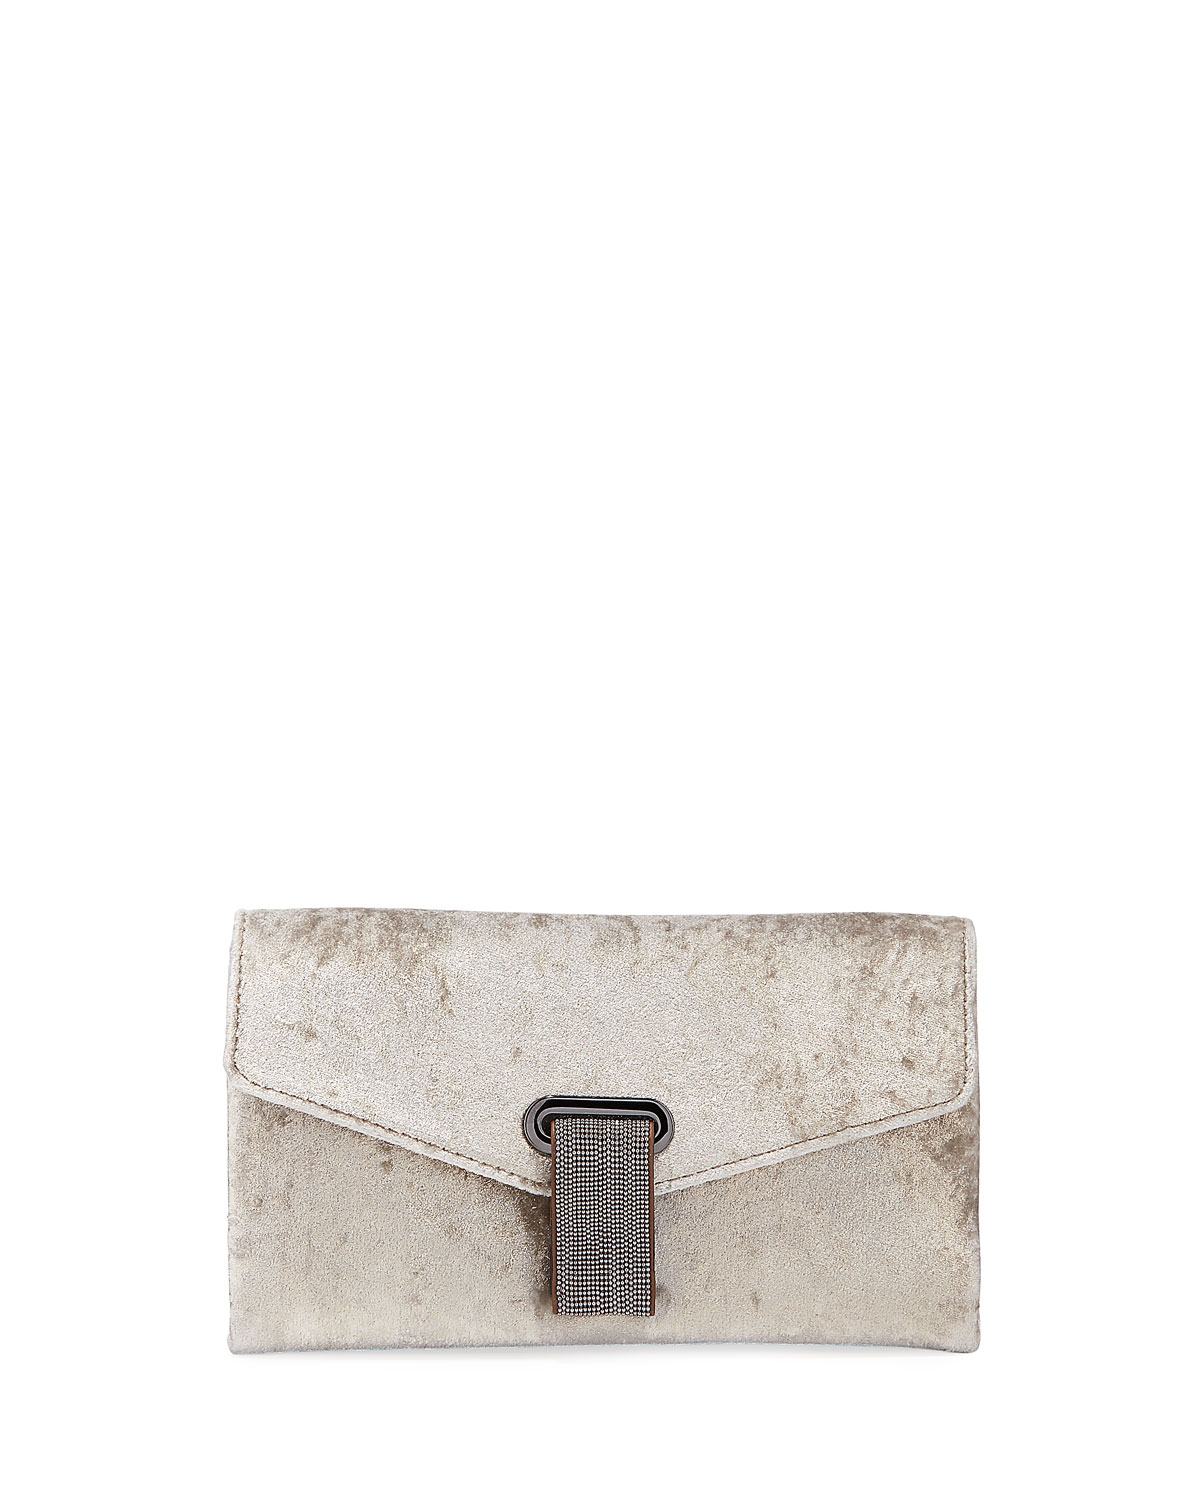 City Suede Crossbody Bag